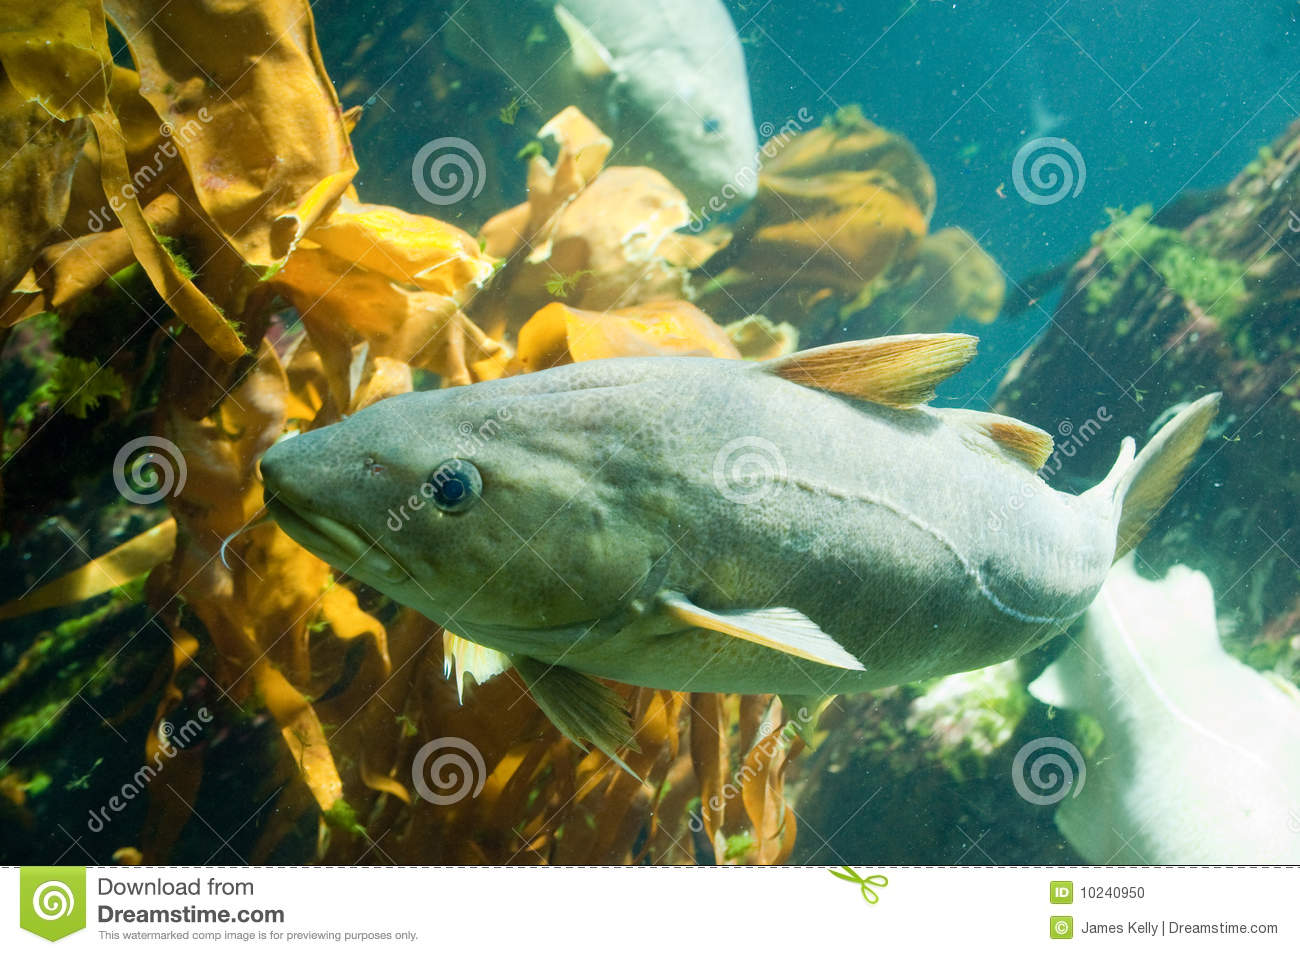 Fish swimming underwater stock photo image 10240950 for Dream of fish swimming